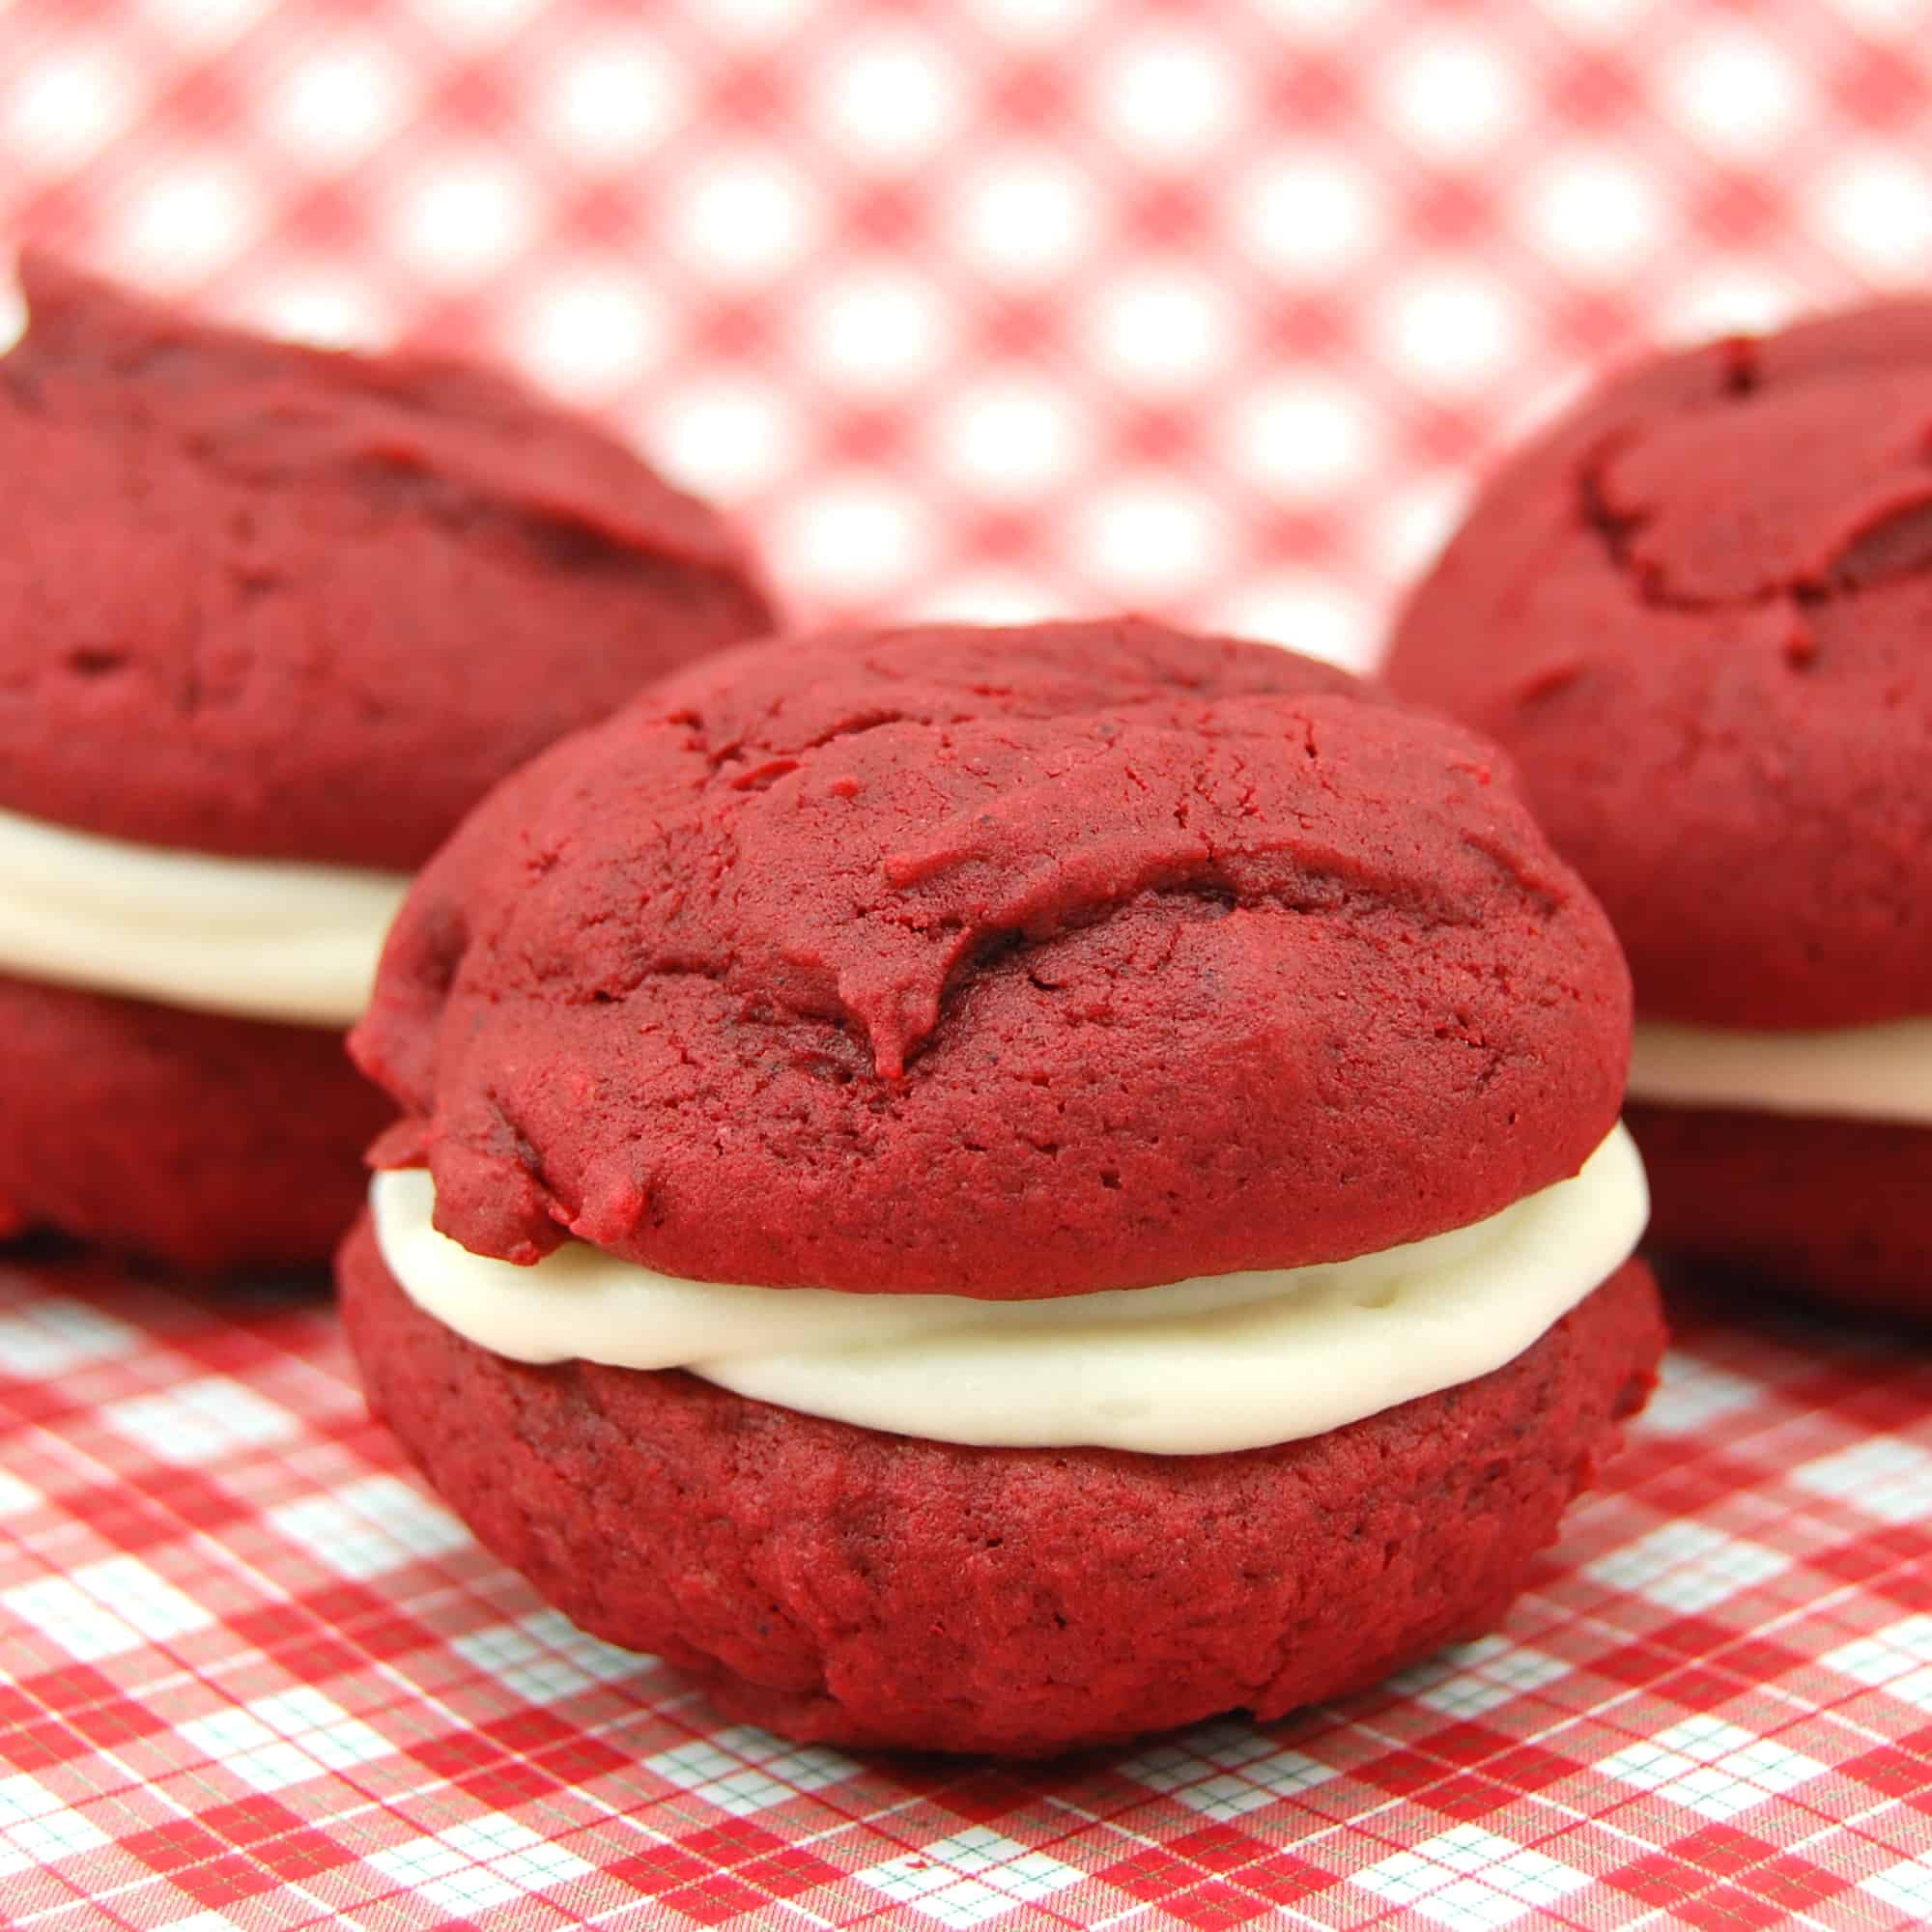 several red velvet whoopie pies ready to eat